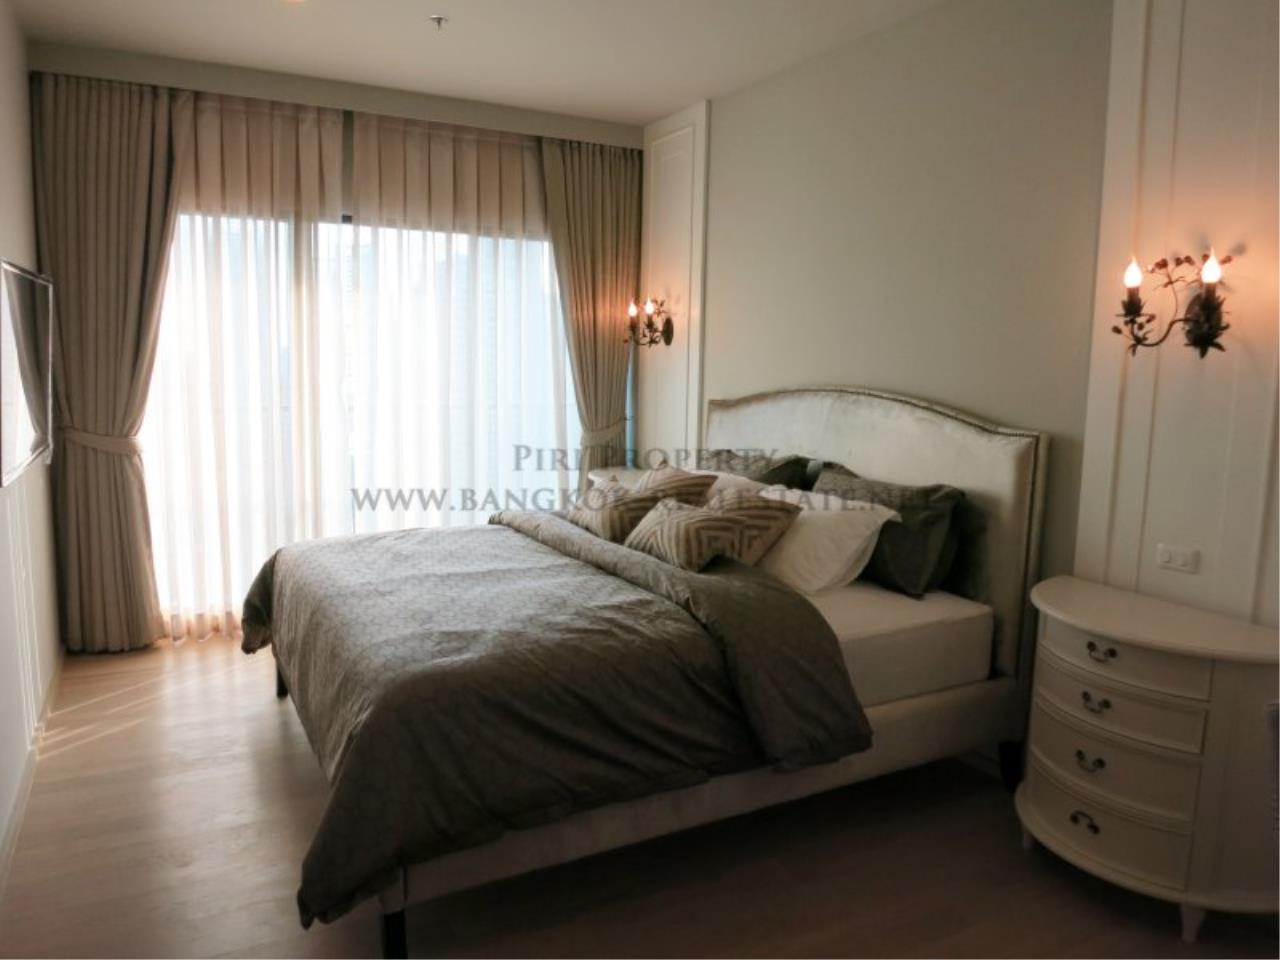 Piri Property Agency's 23rd Floor - Noble Refine - Nicely furnished 1 bedroom Condo 2